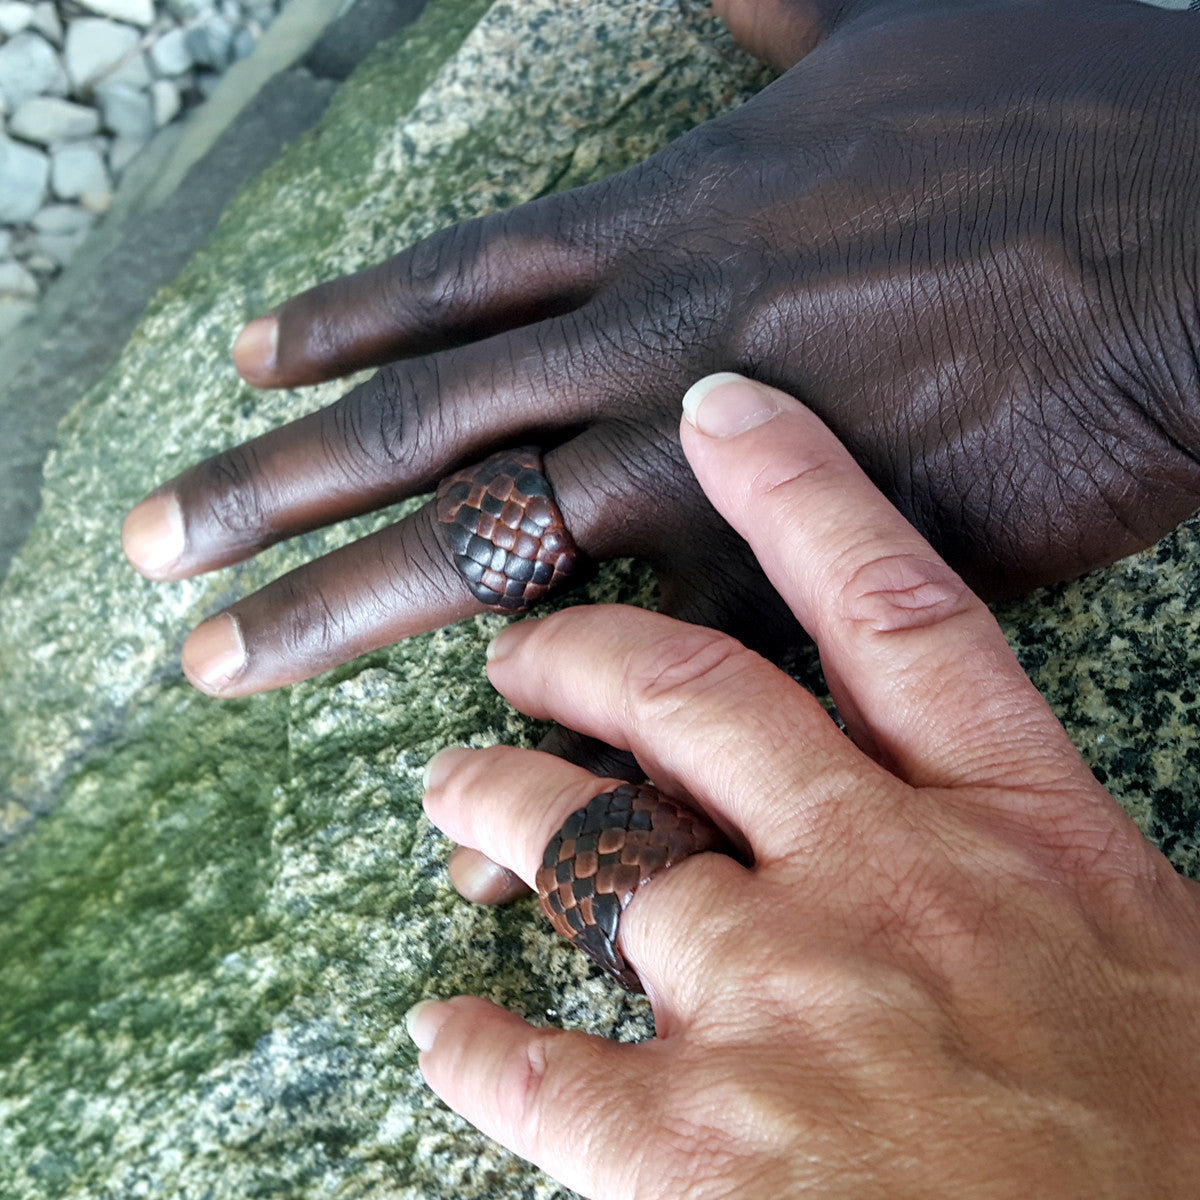 Men's Women's Braided Leather Rings | African male model | Couple's Rings | Engagement Anniversary Wedding Bands on interracial couple